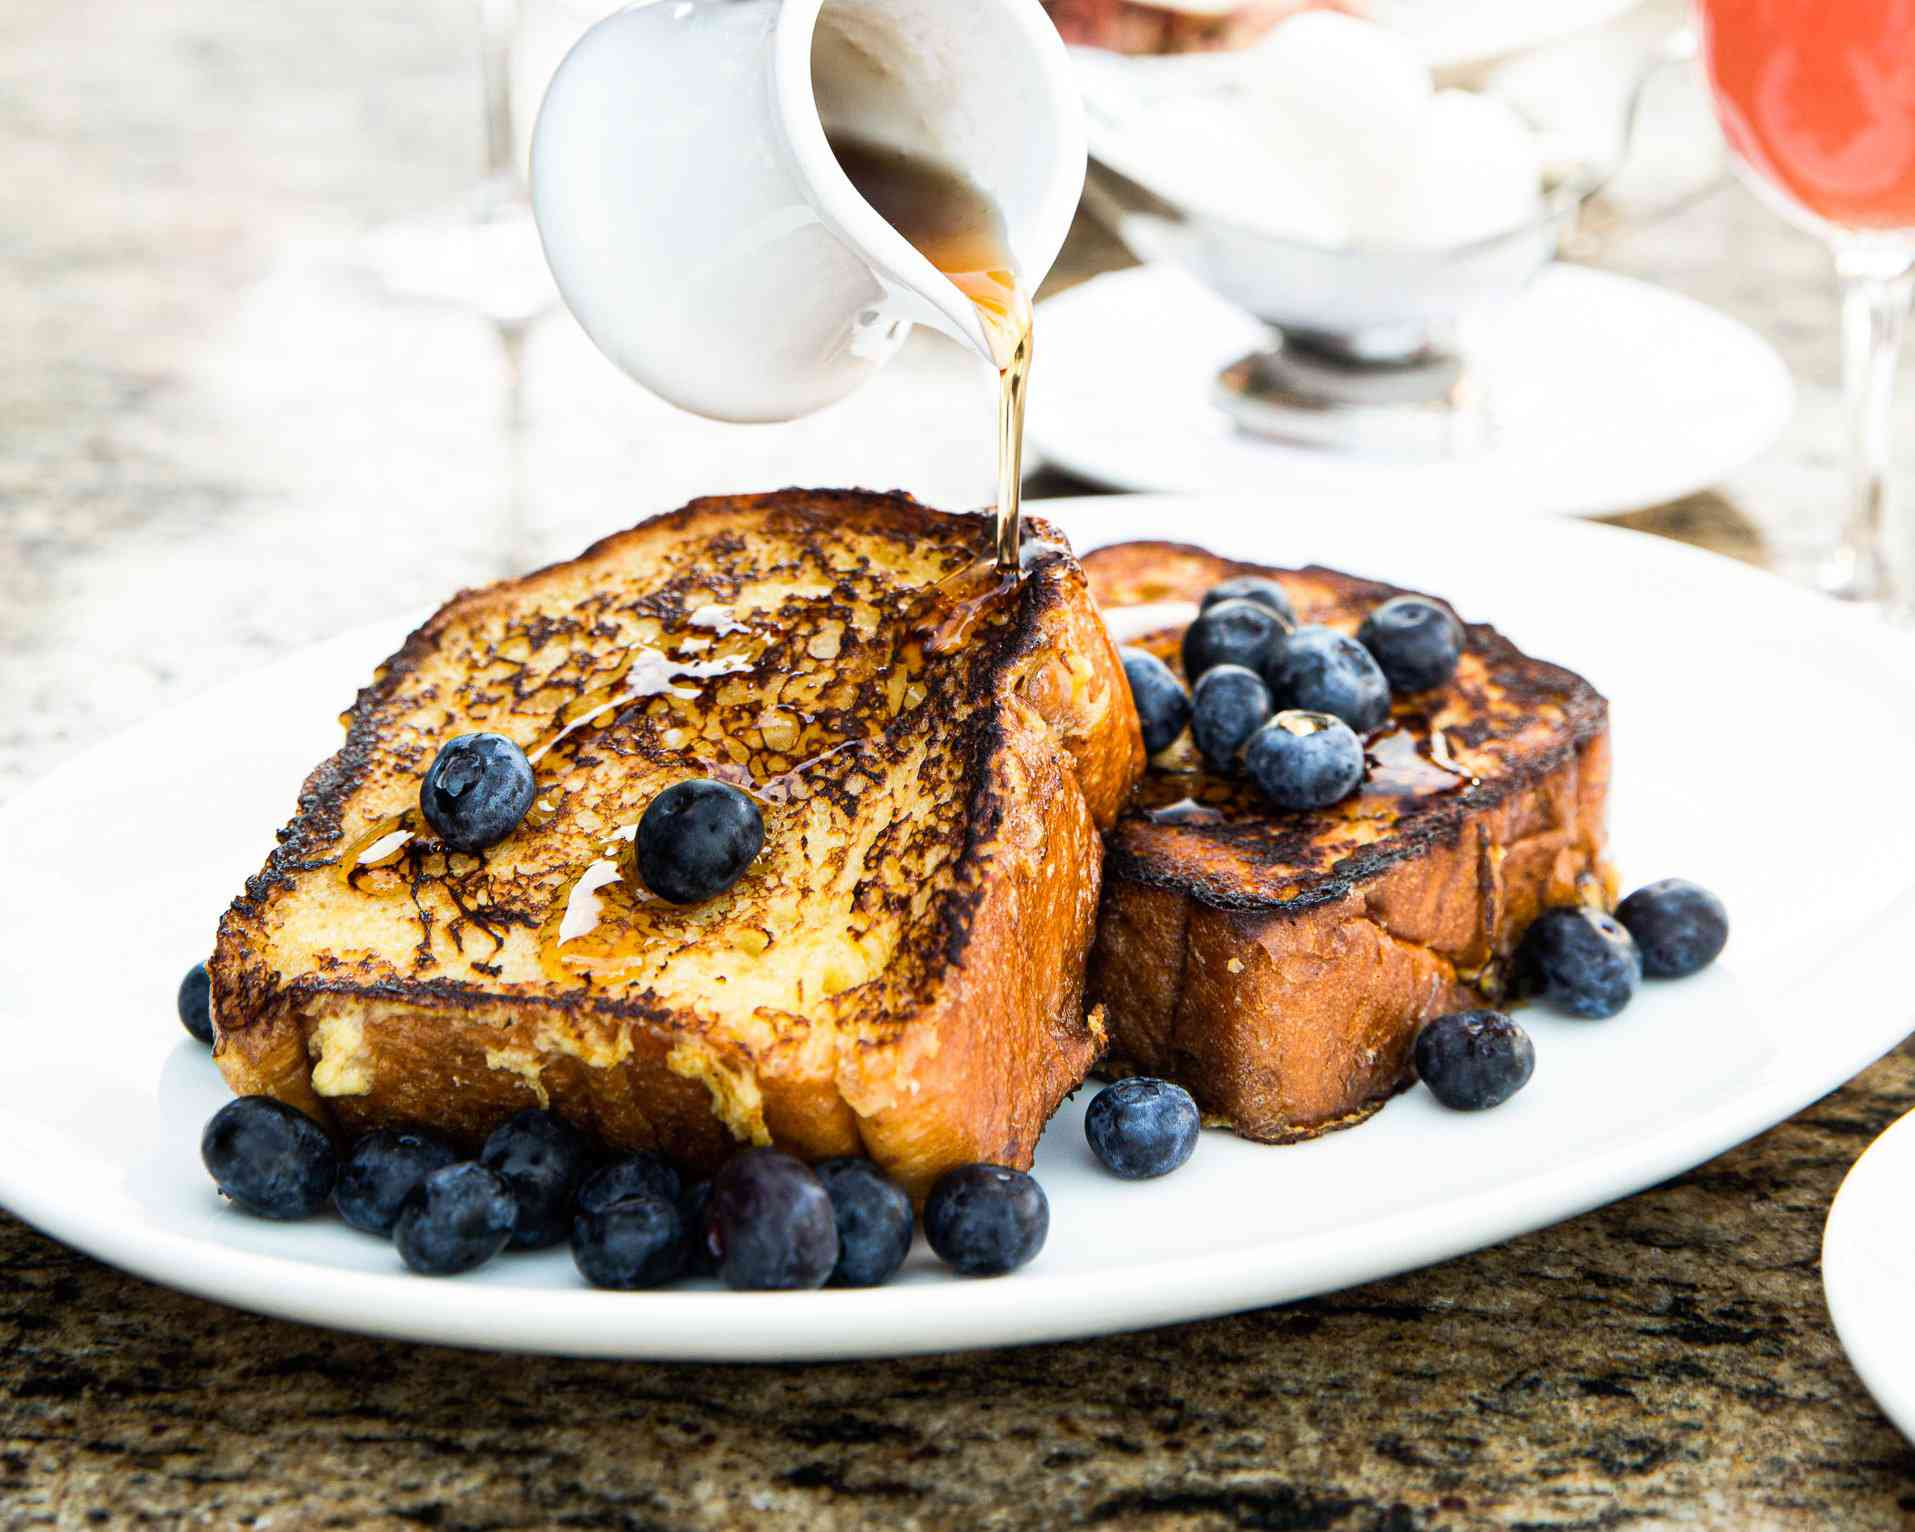 Syrup being poured over two thick pieces of french toast with fresh blueberries